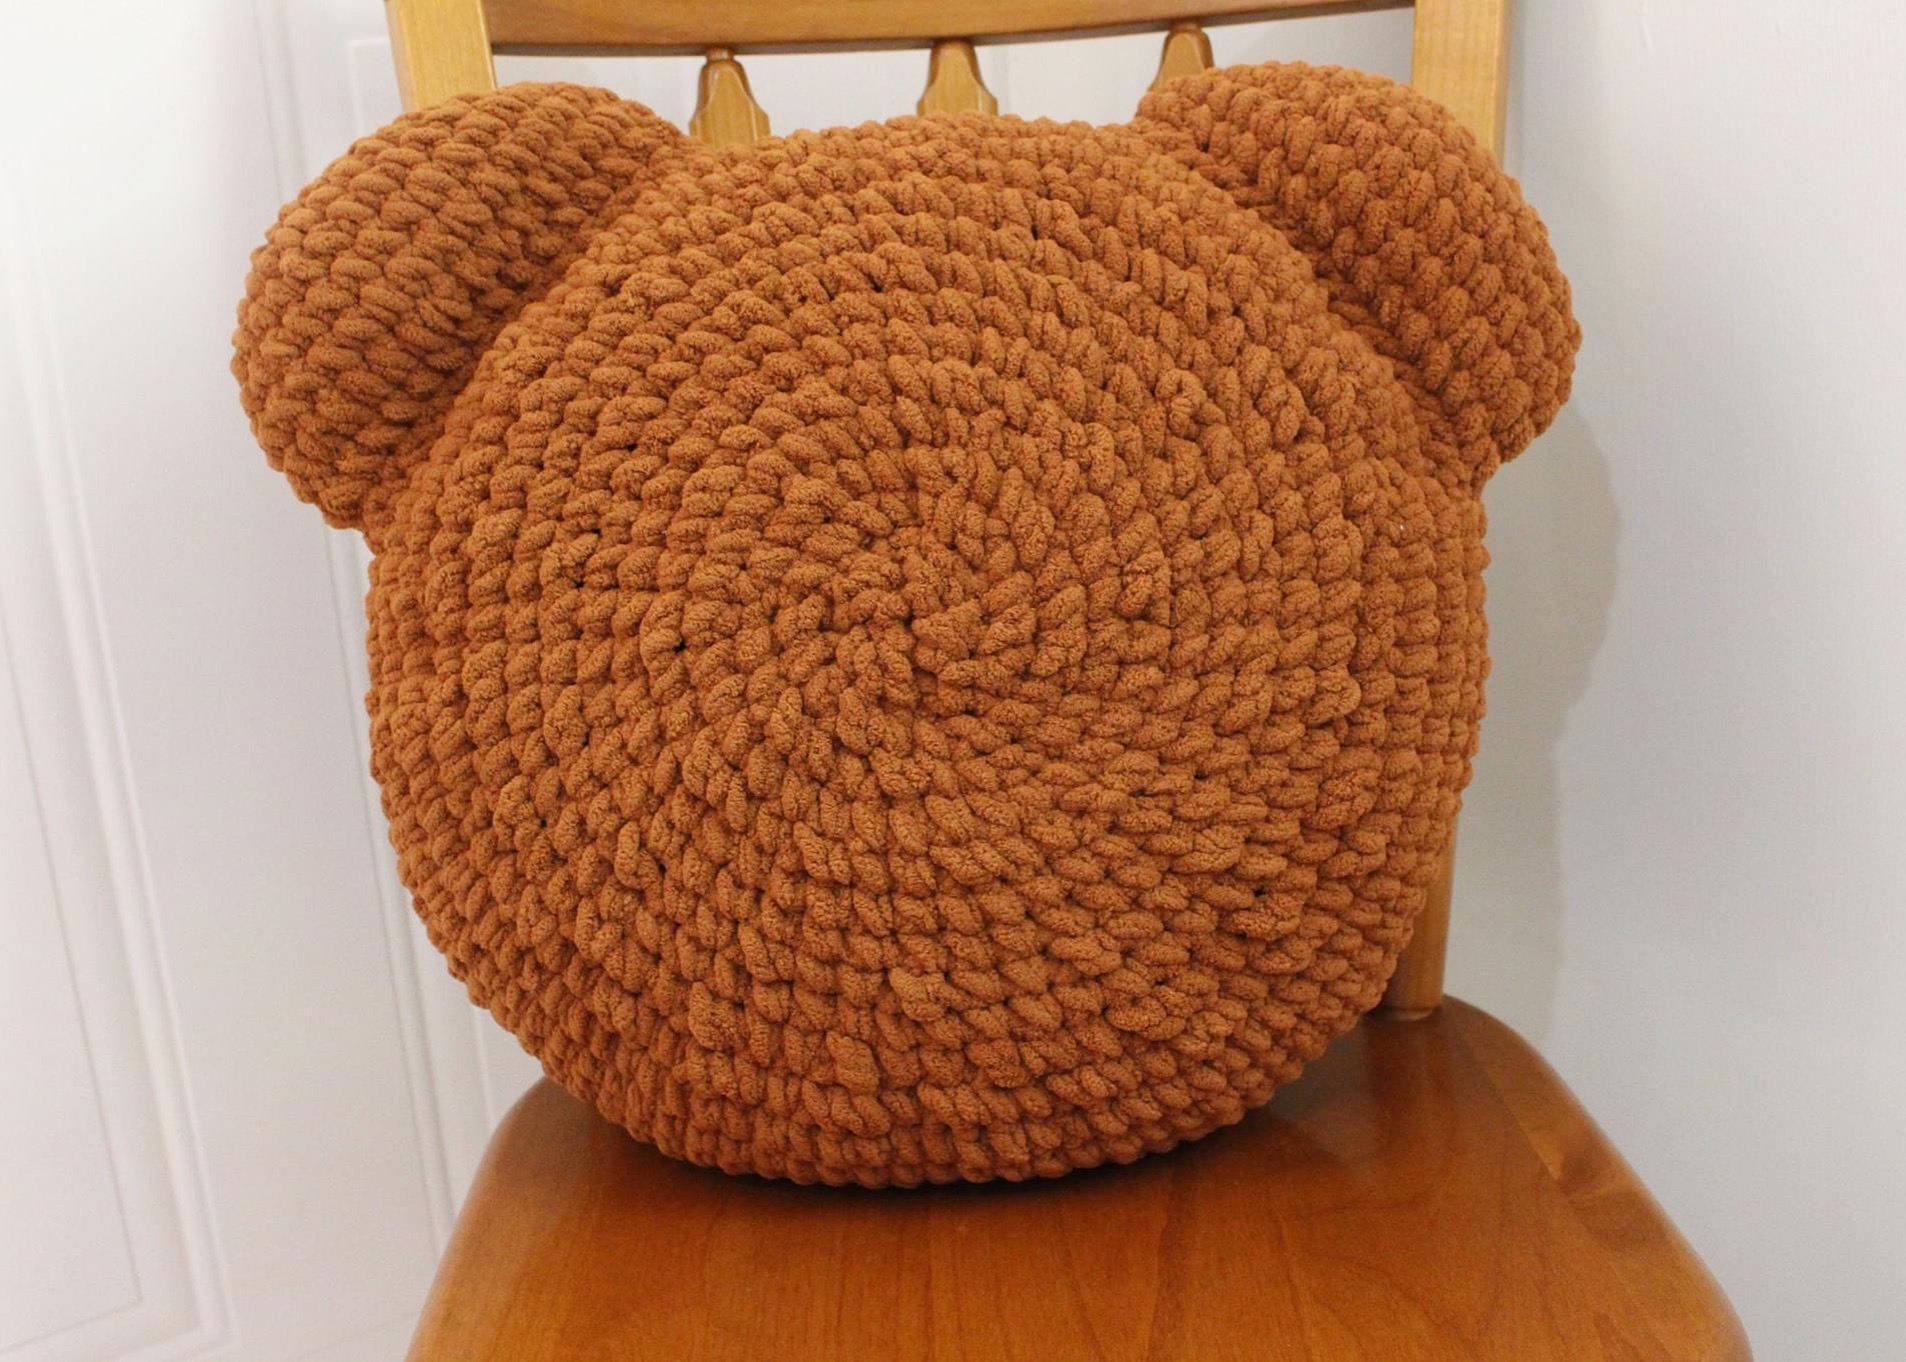 Crochet Teddy Bear Pillow | I Heart Gantsilyo